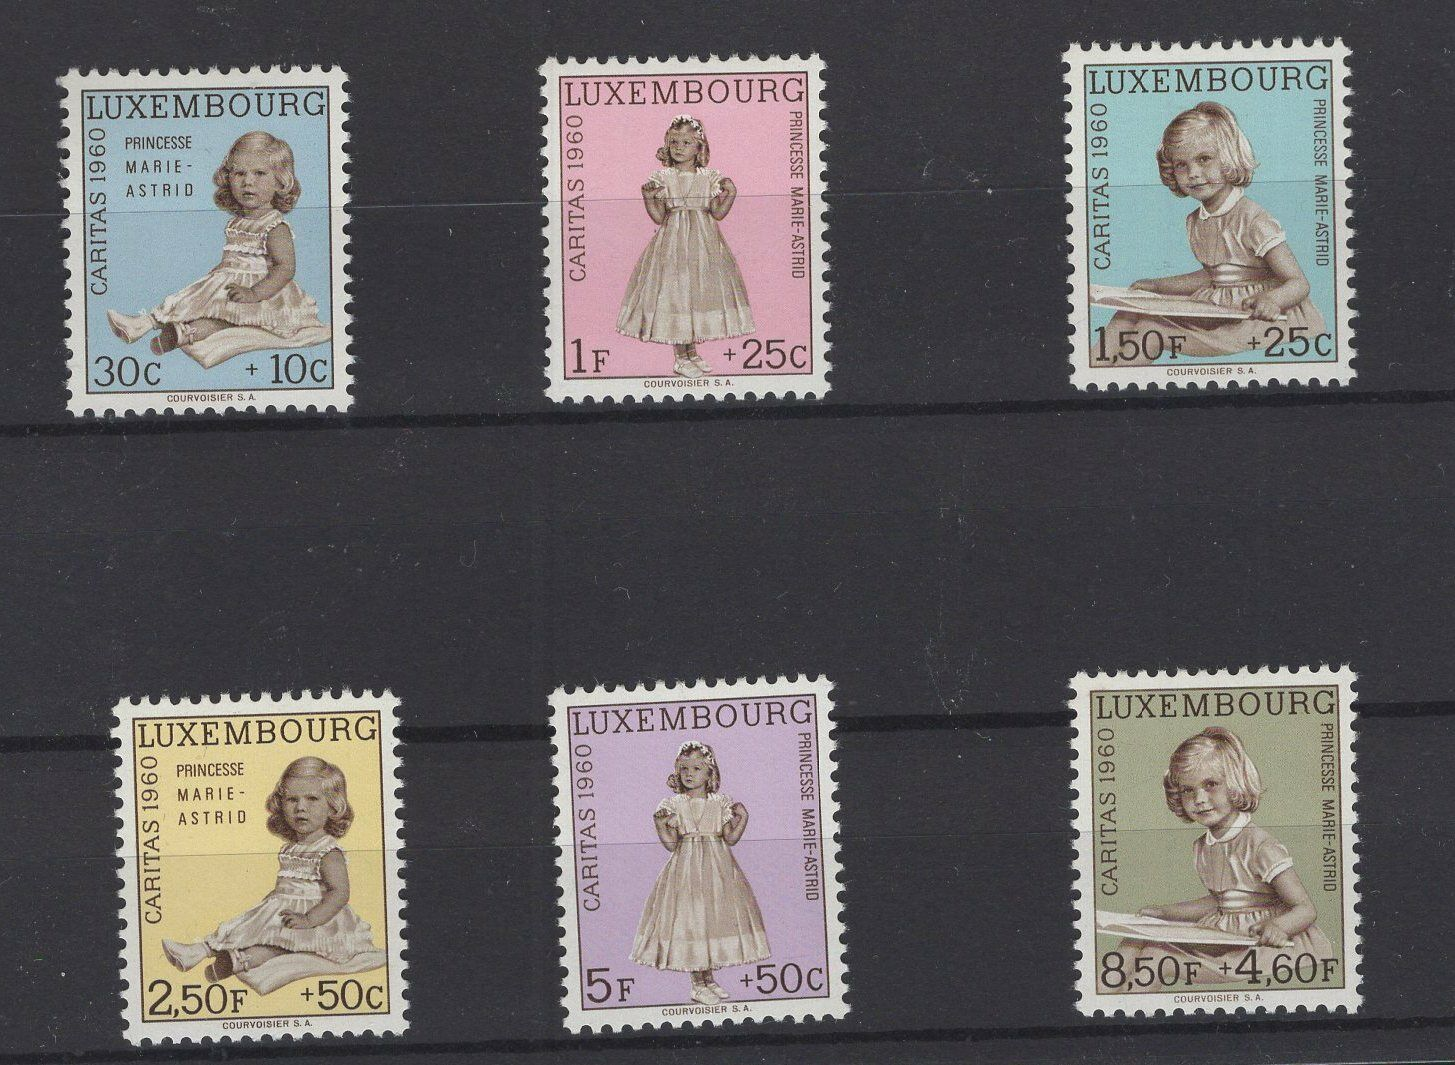 LUXEMBOURG, STAMPS, 1960, Mi. 631-636 **